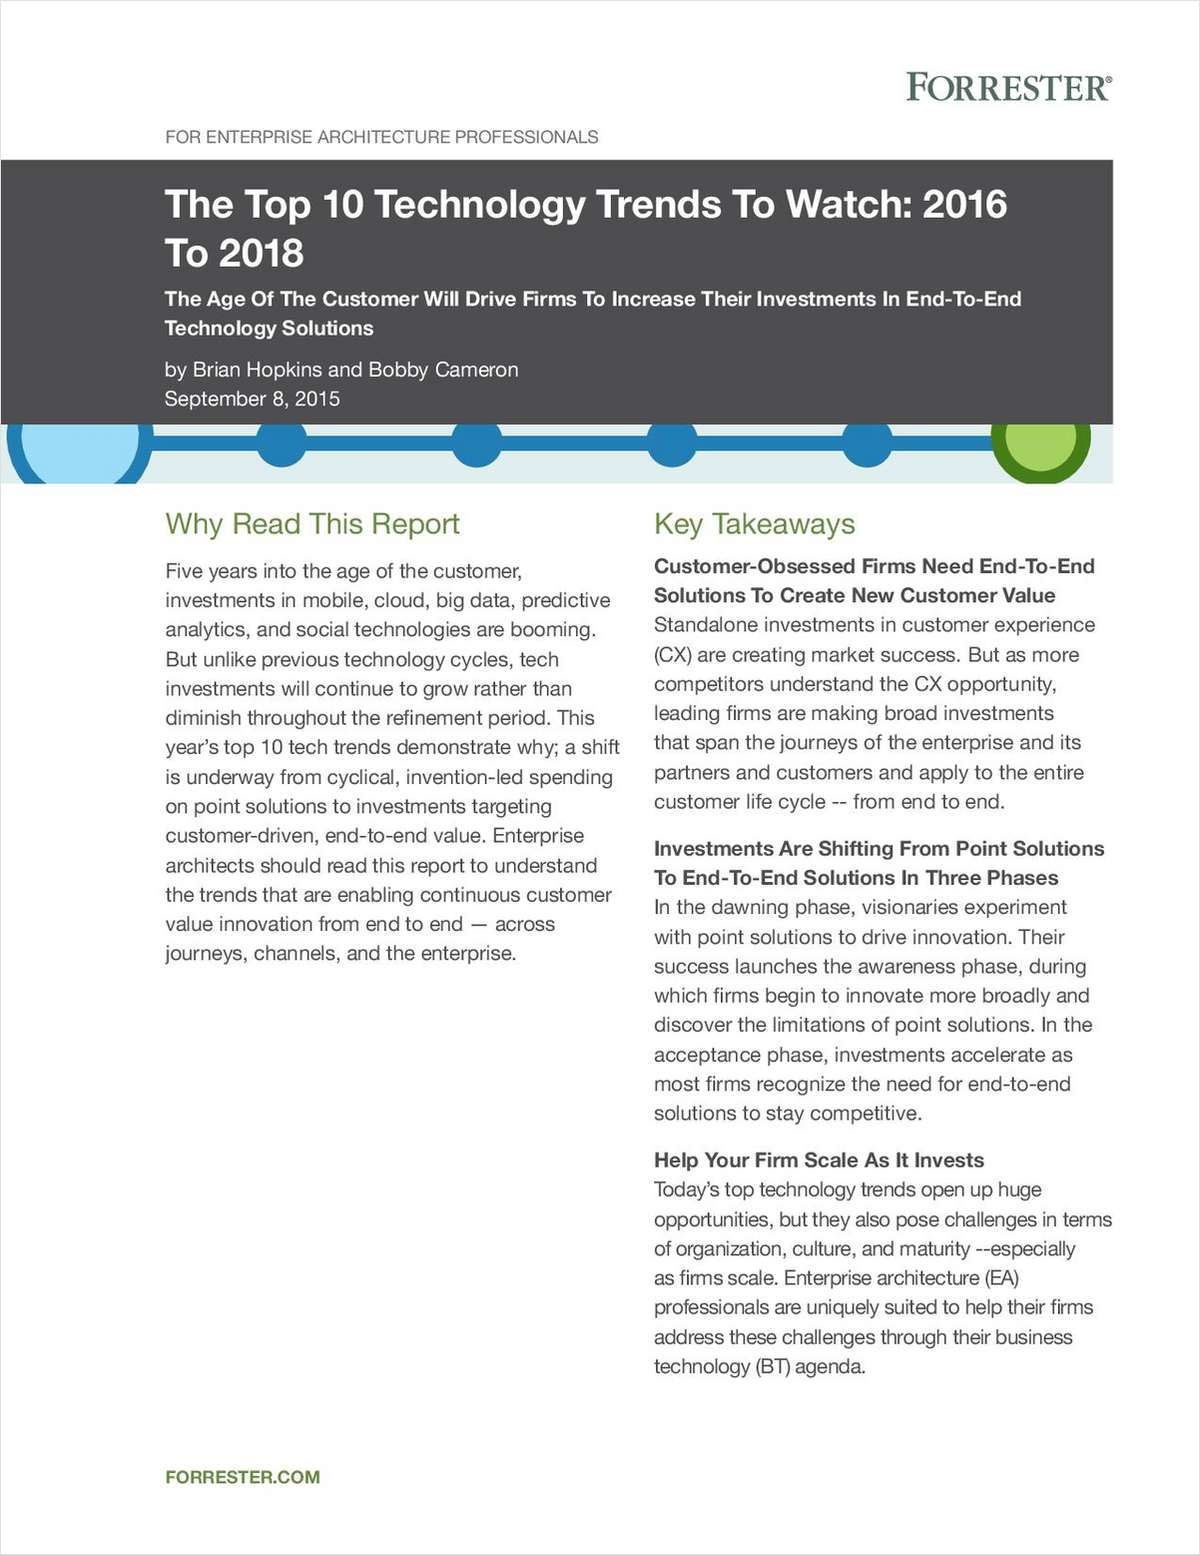 Forrester Top 10 Technology Trends to Watch 2016-2018